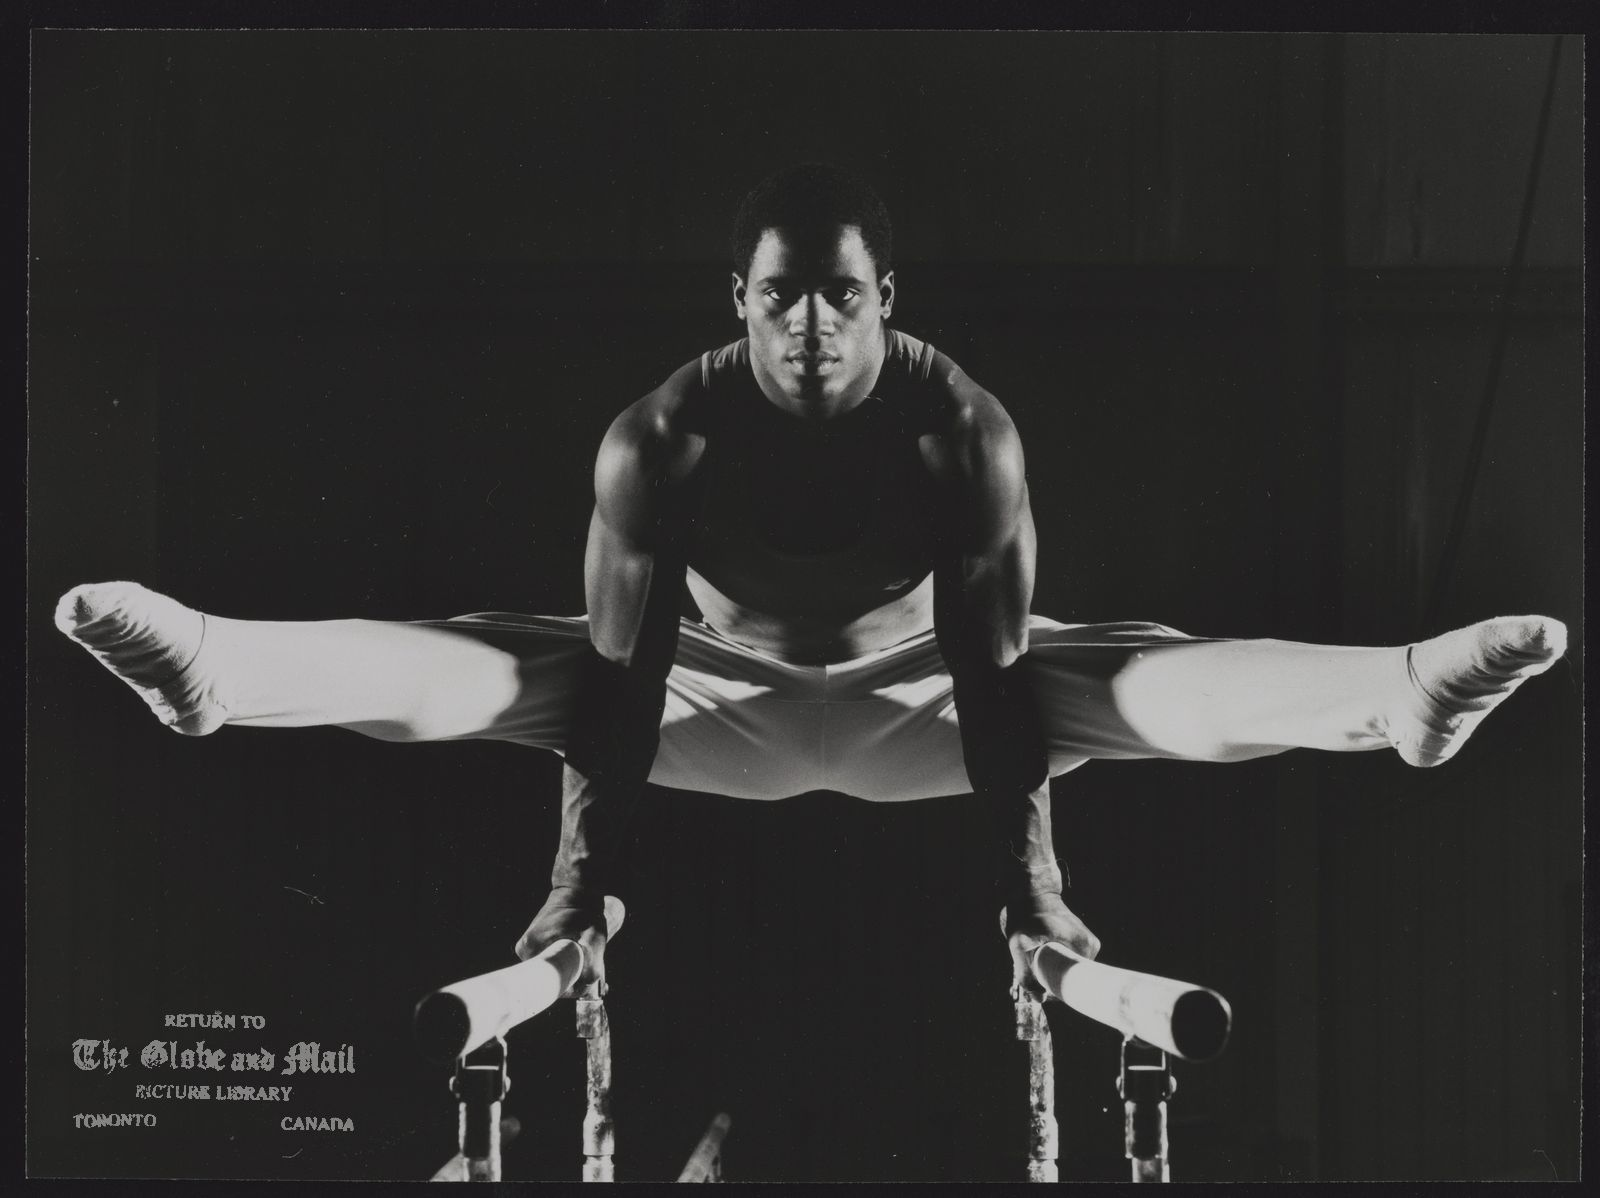 The notes transcribed from the back of this photograph are as follows: Curtis HIBBERT Toronto. Gymnast